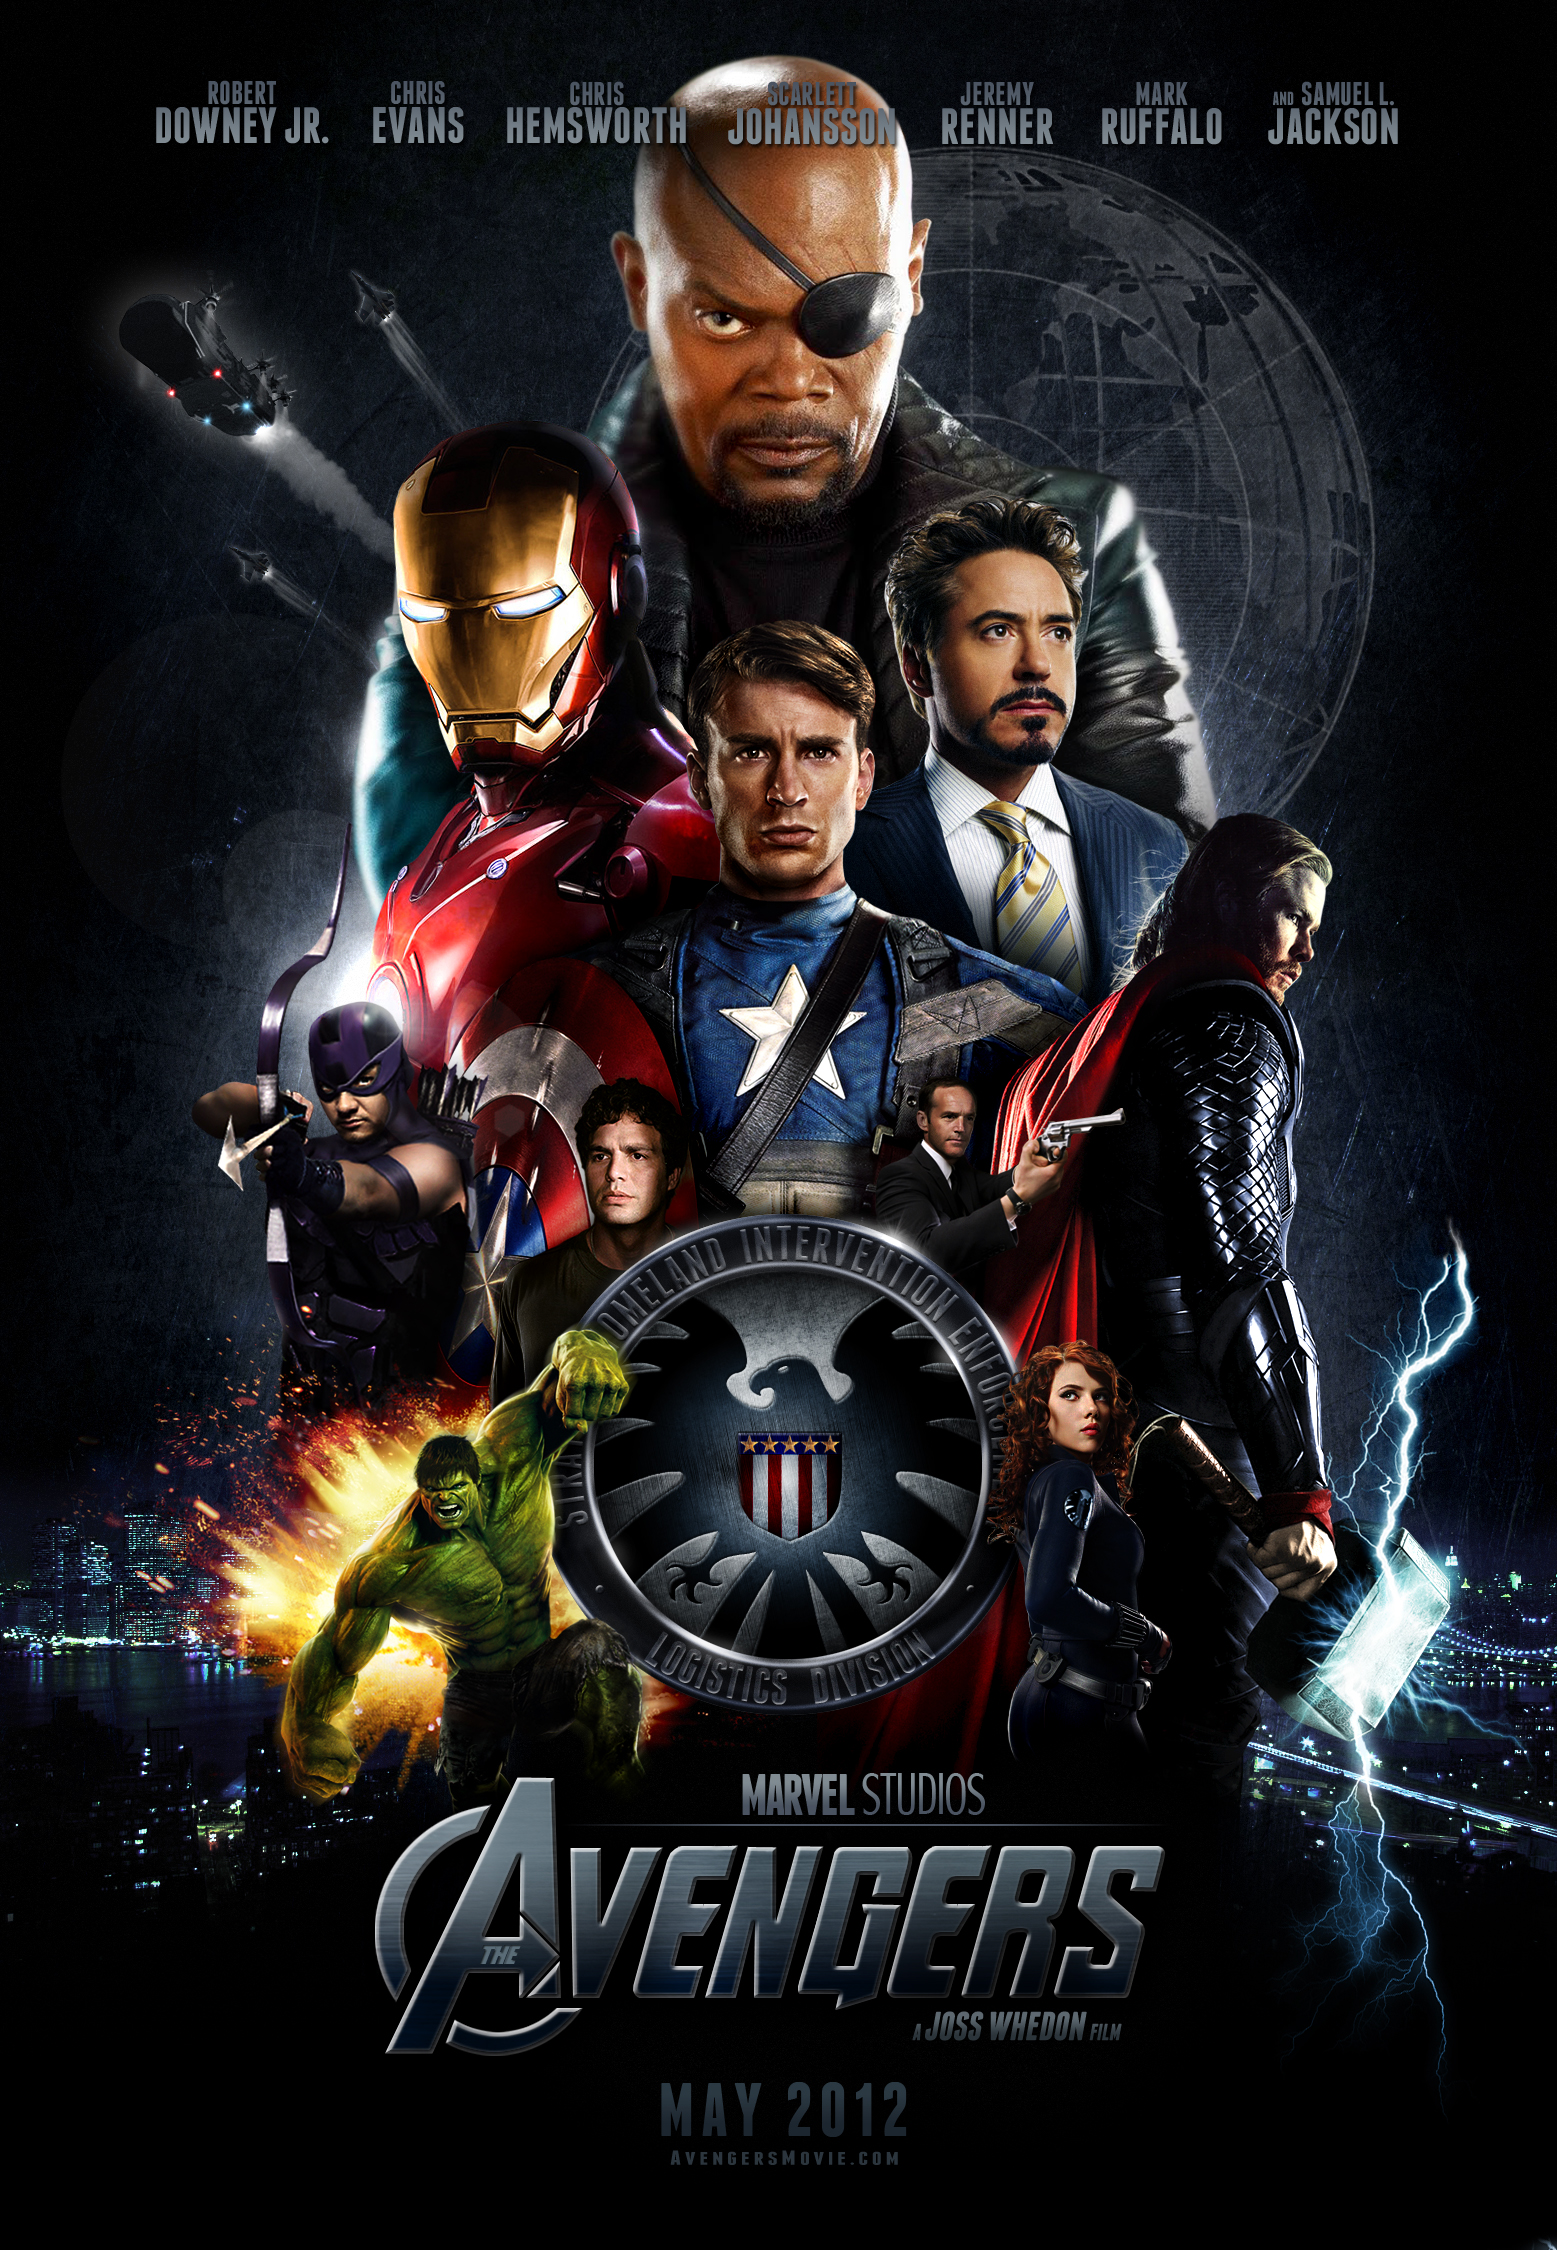 The Avengers poster - The Avengers Photo (24746041) - Fanpop